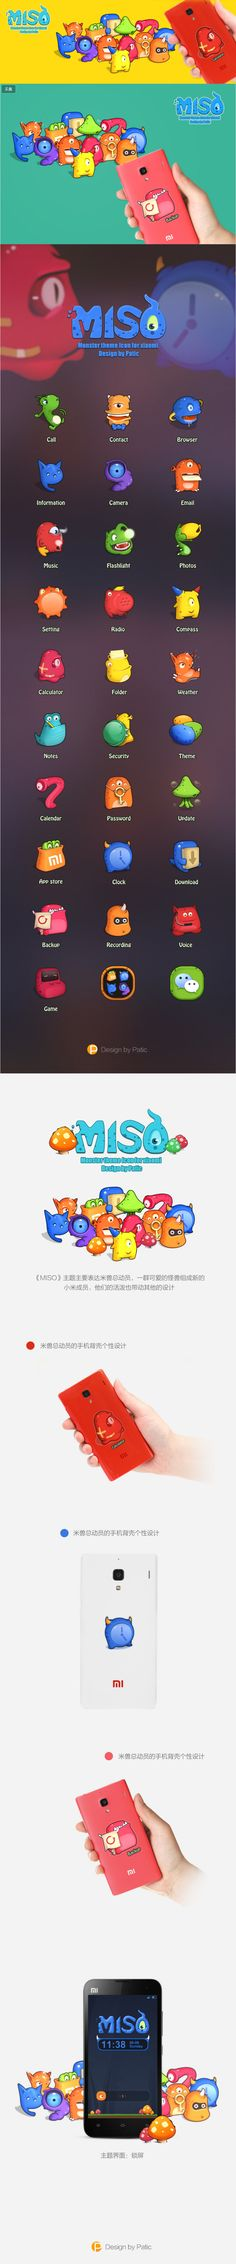 《MISO》or《米兽》-UI中国-专业... ★ Find more at http://www.pinterest.com/competing/